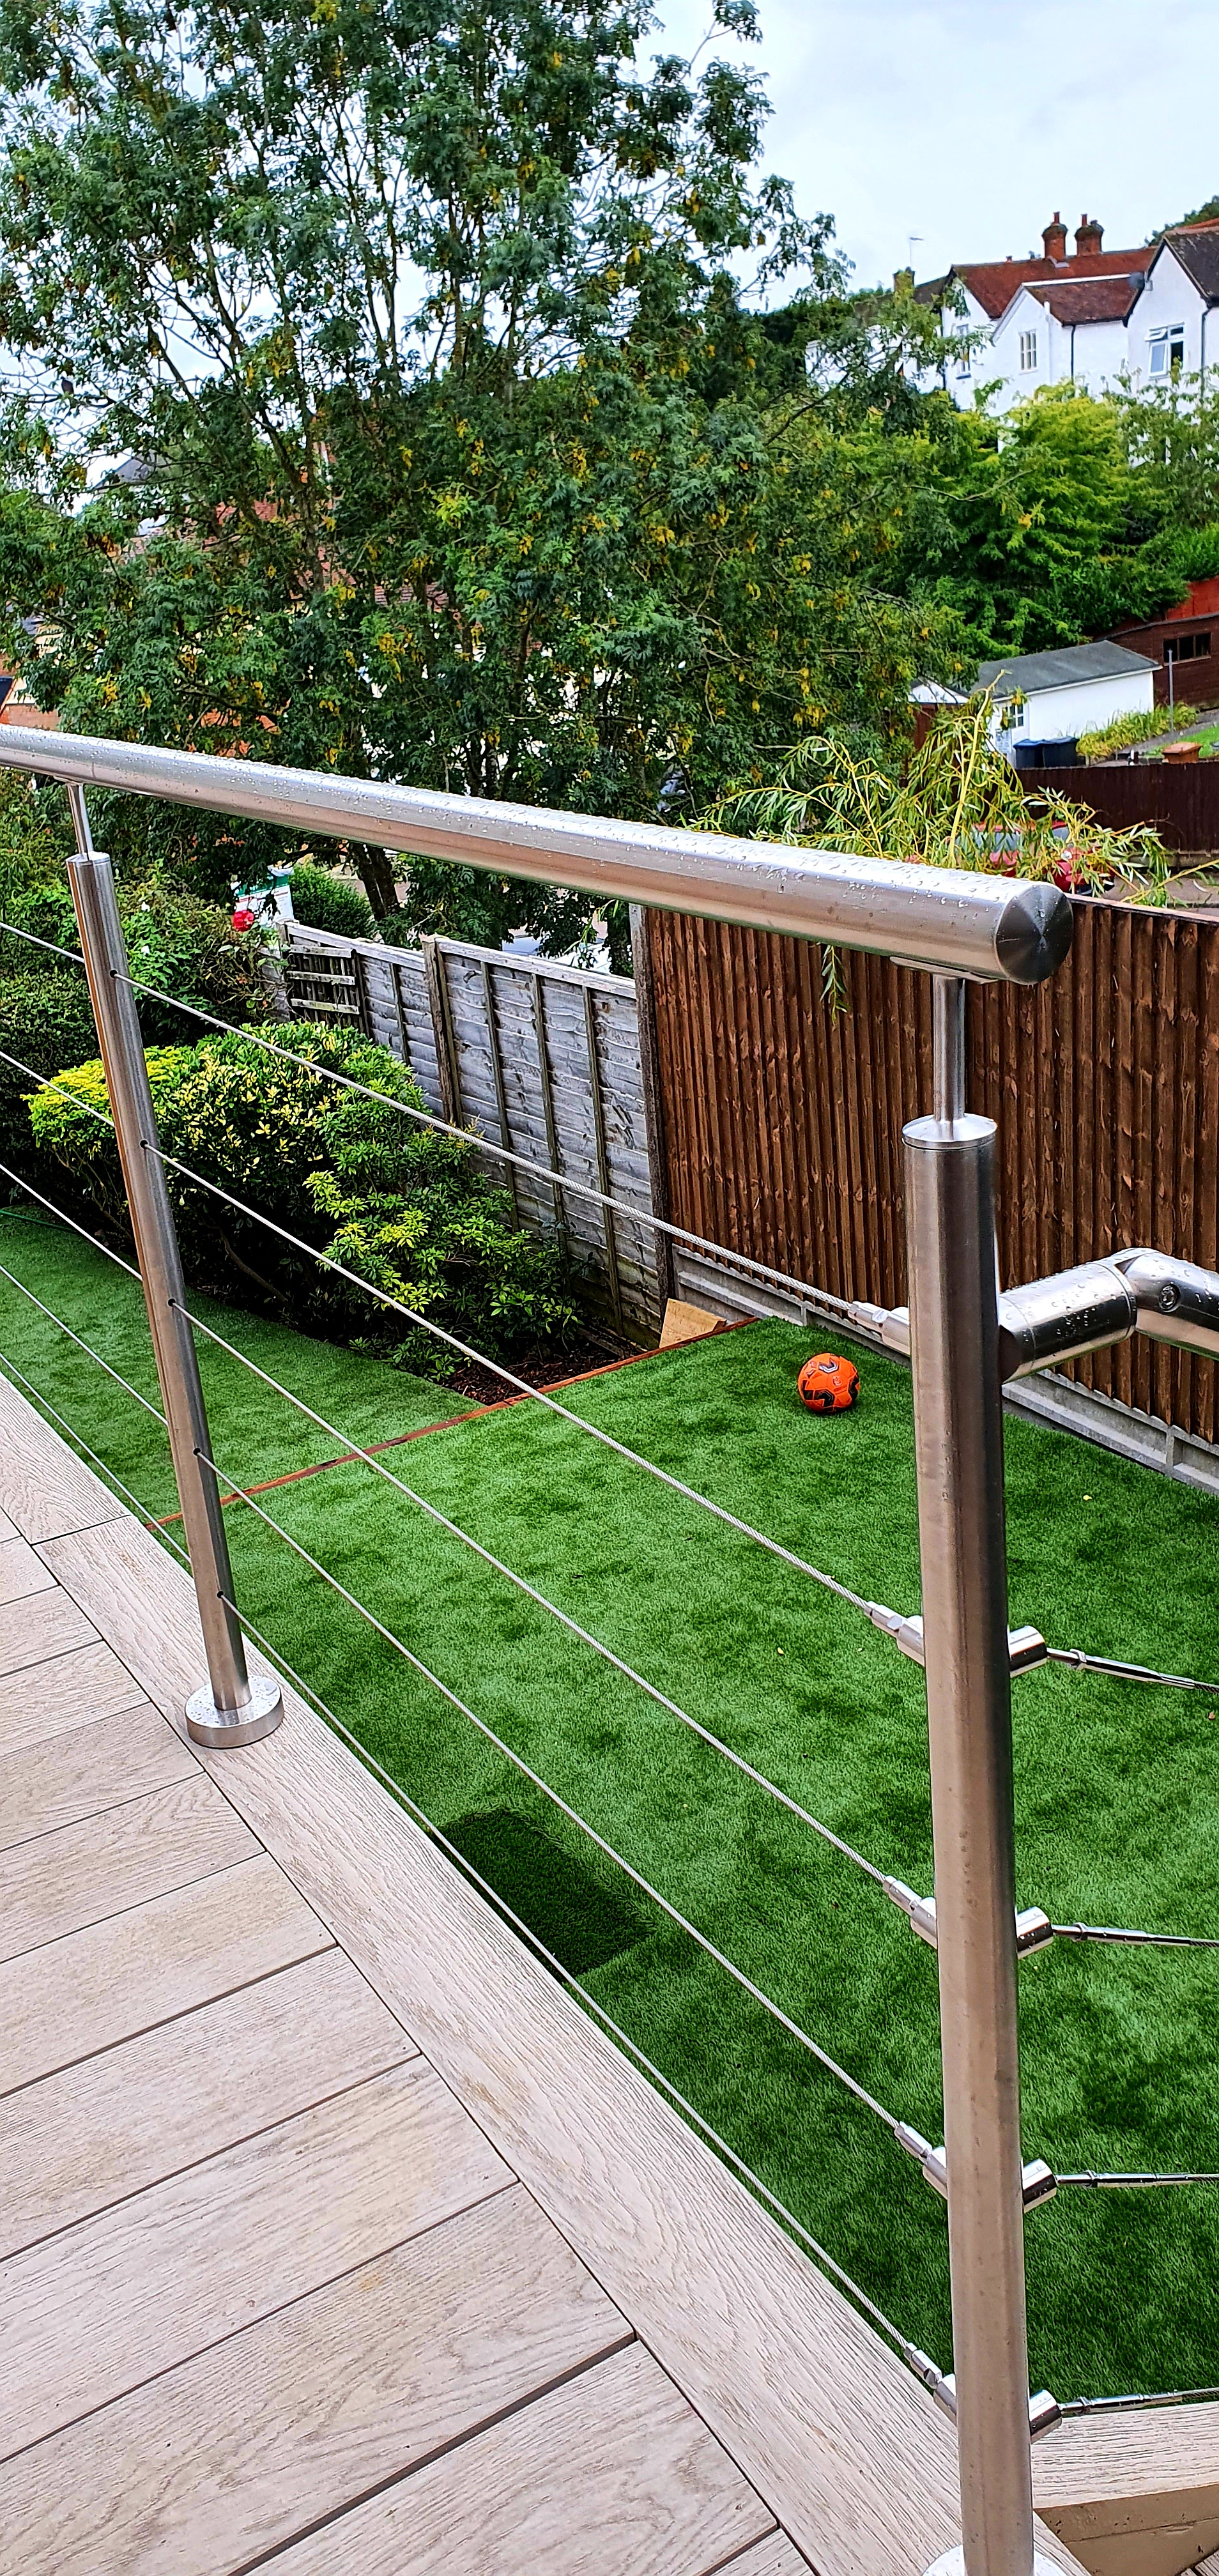 Stainless steel handrail and wires